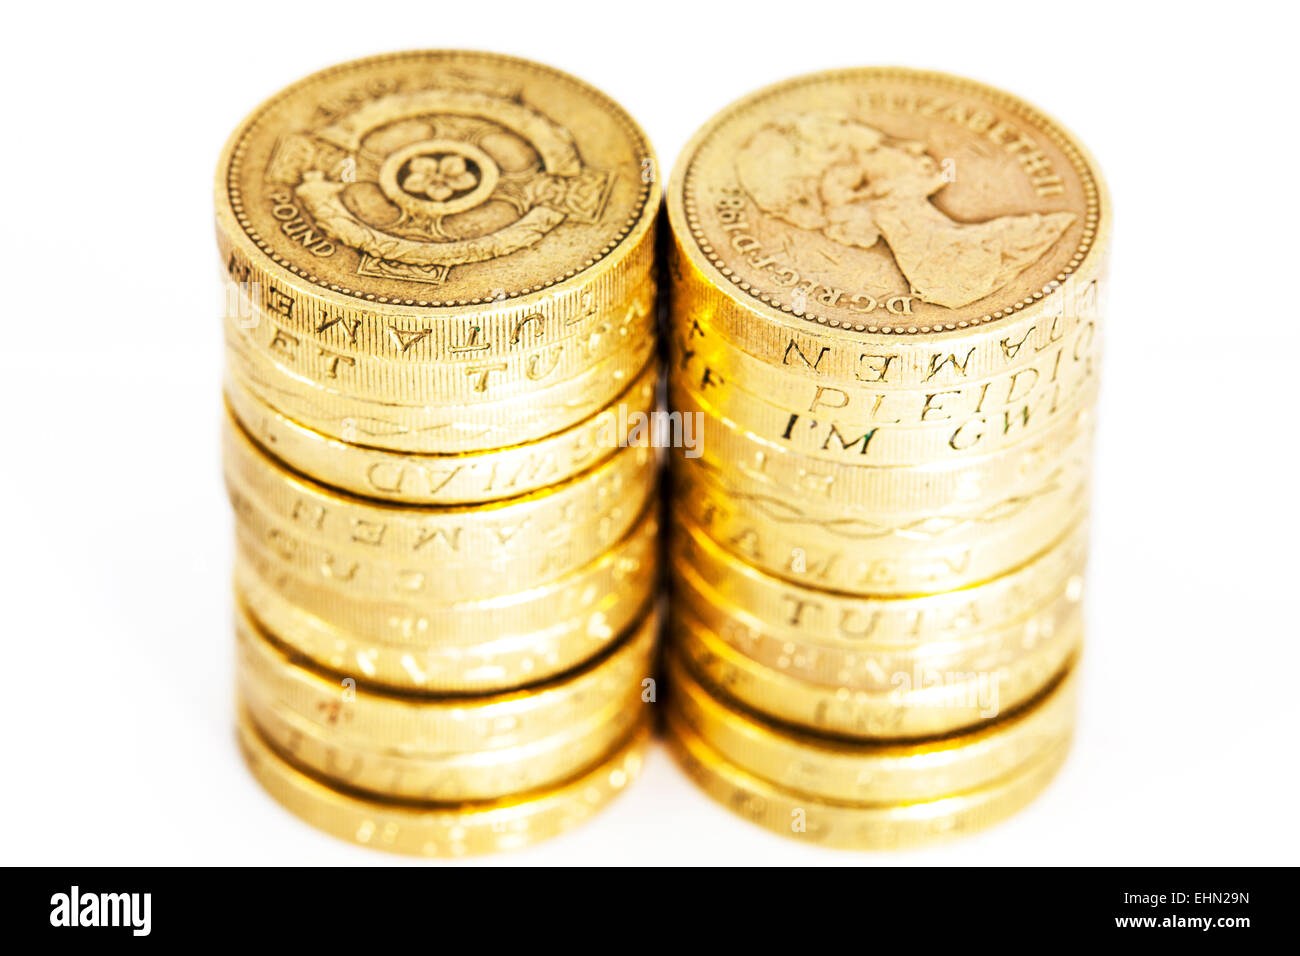 pound coins stacks close detail money cash UK currency isolated cut out cutout white background - Stock Image